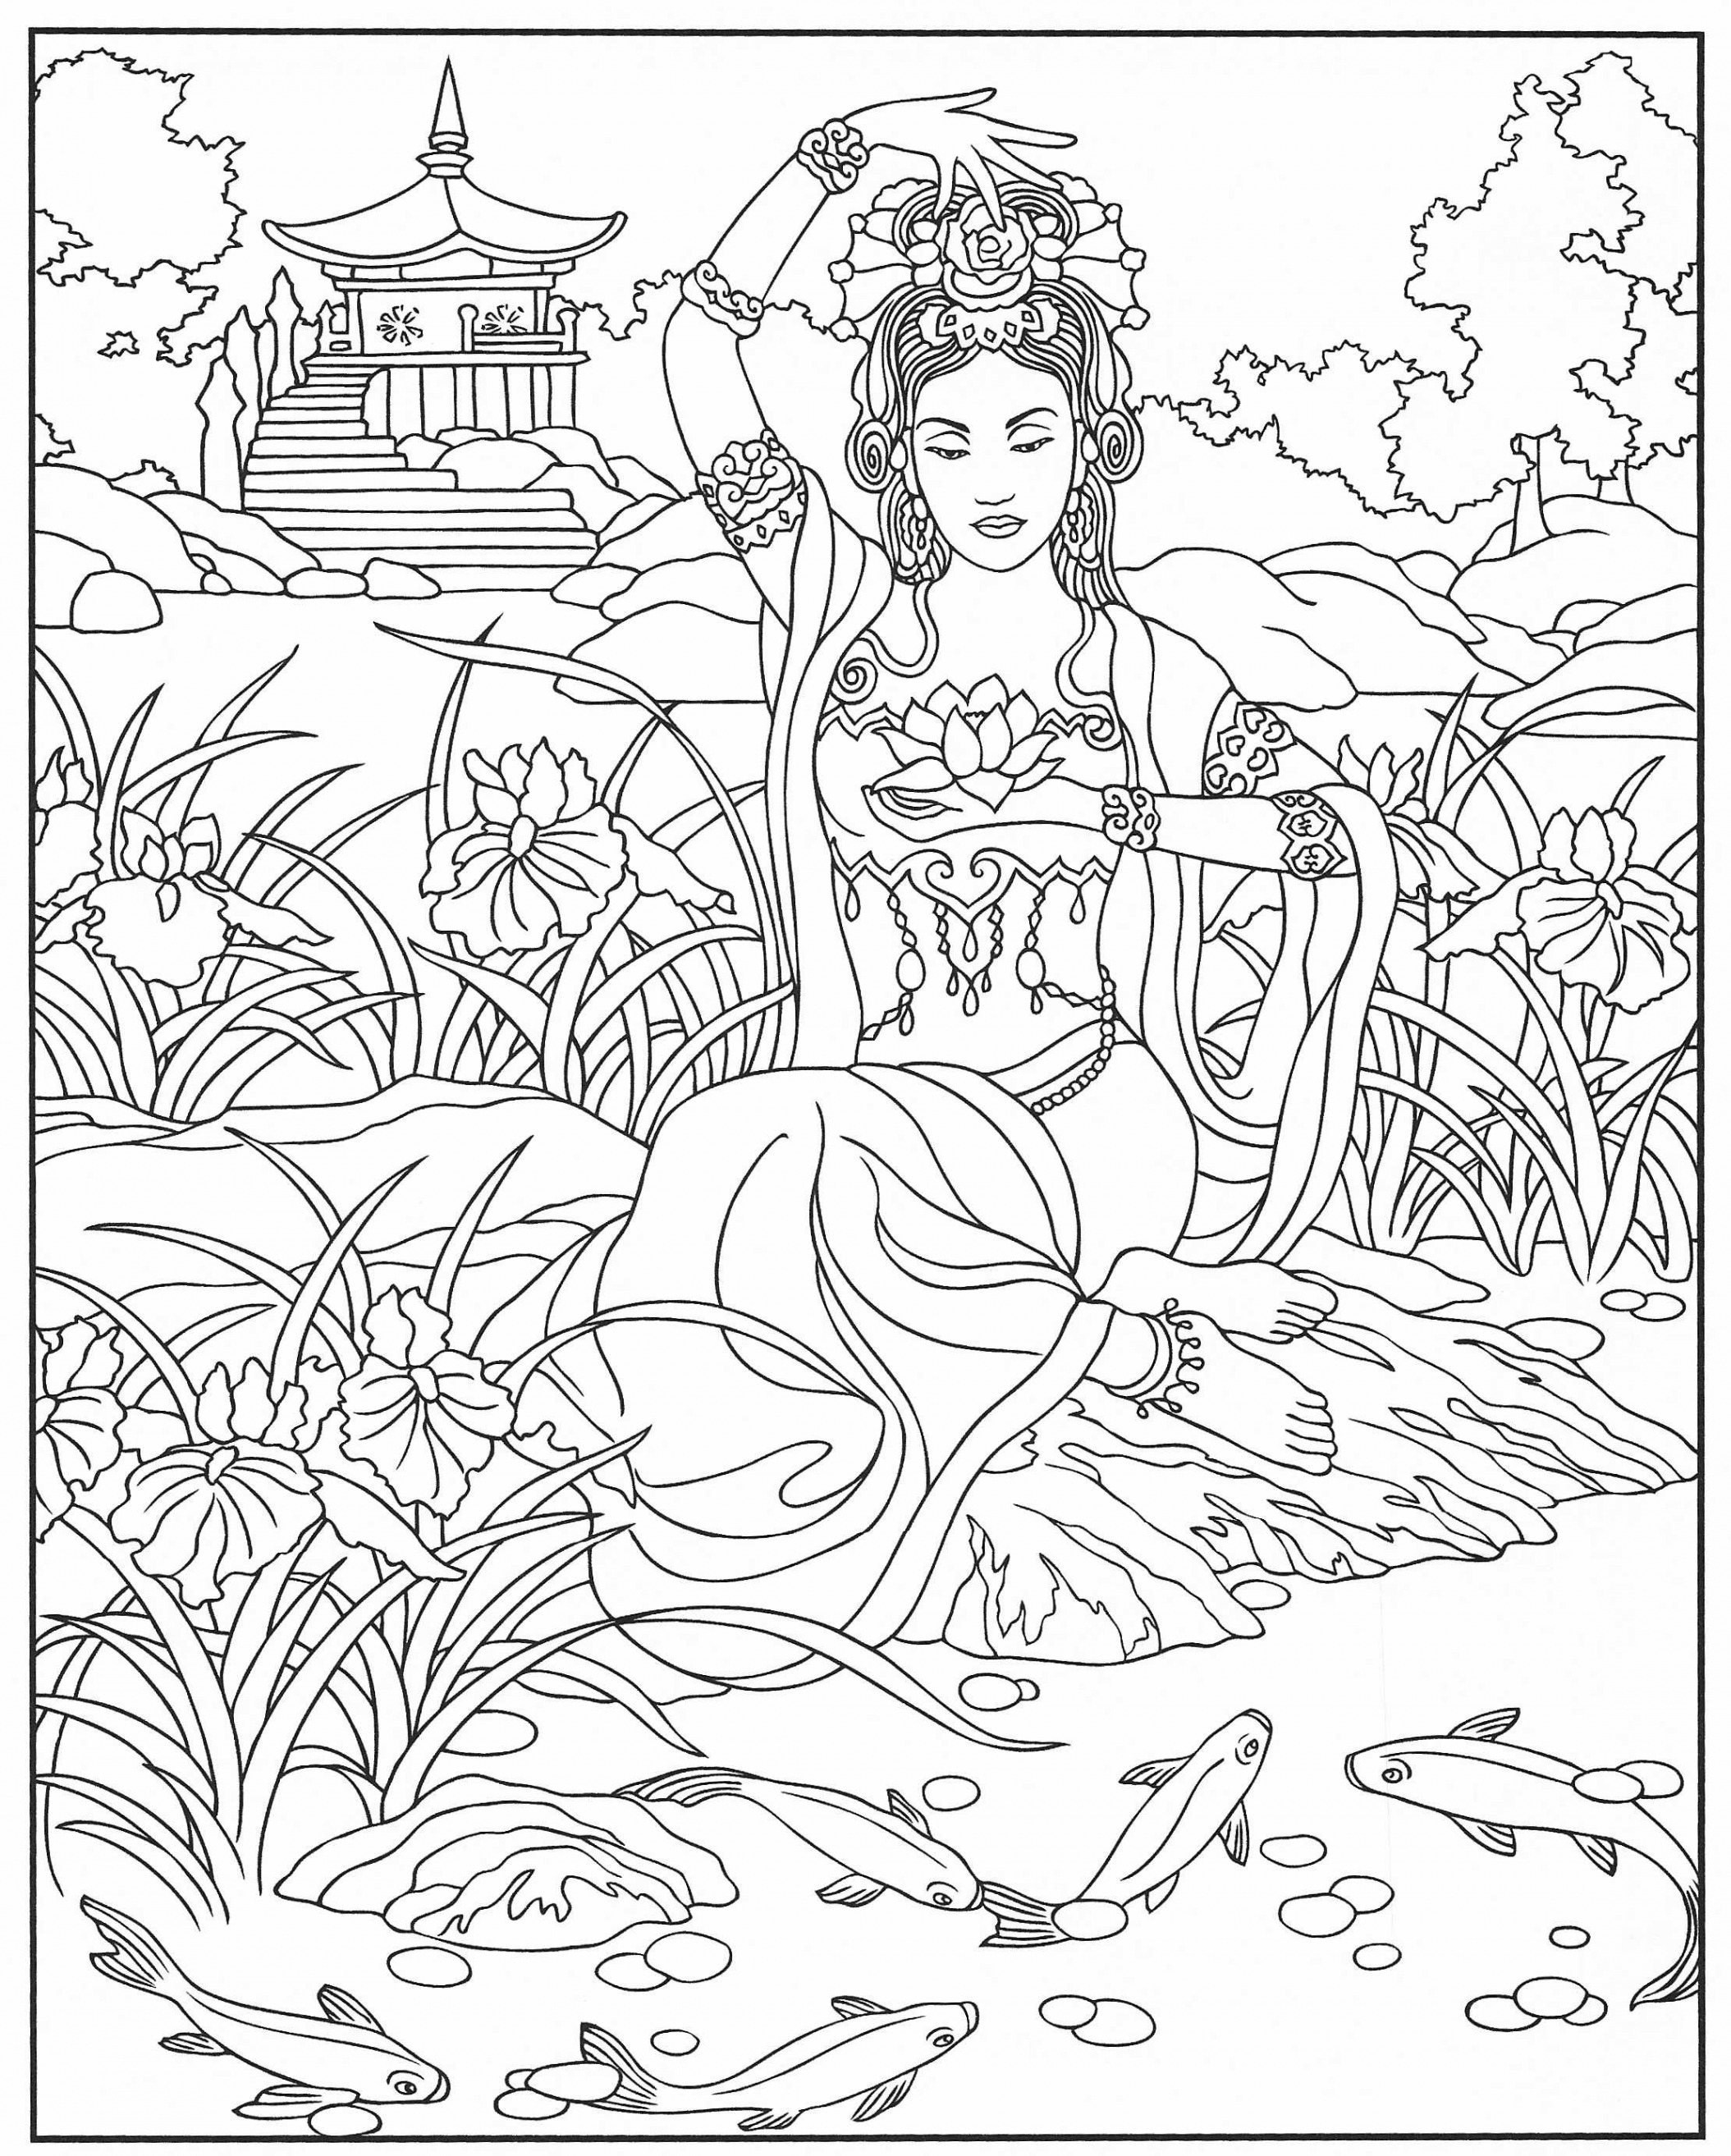 Wedding Dress Coloring Pages  Gallery 8s - Free For kids